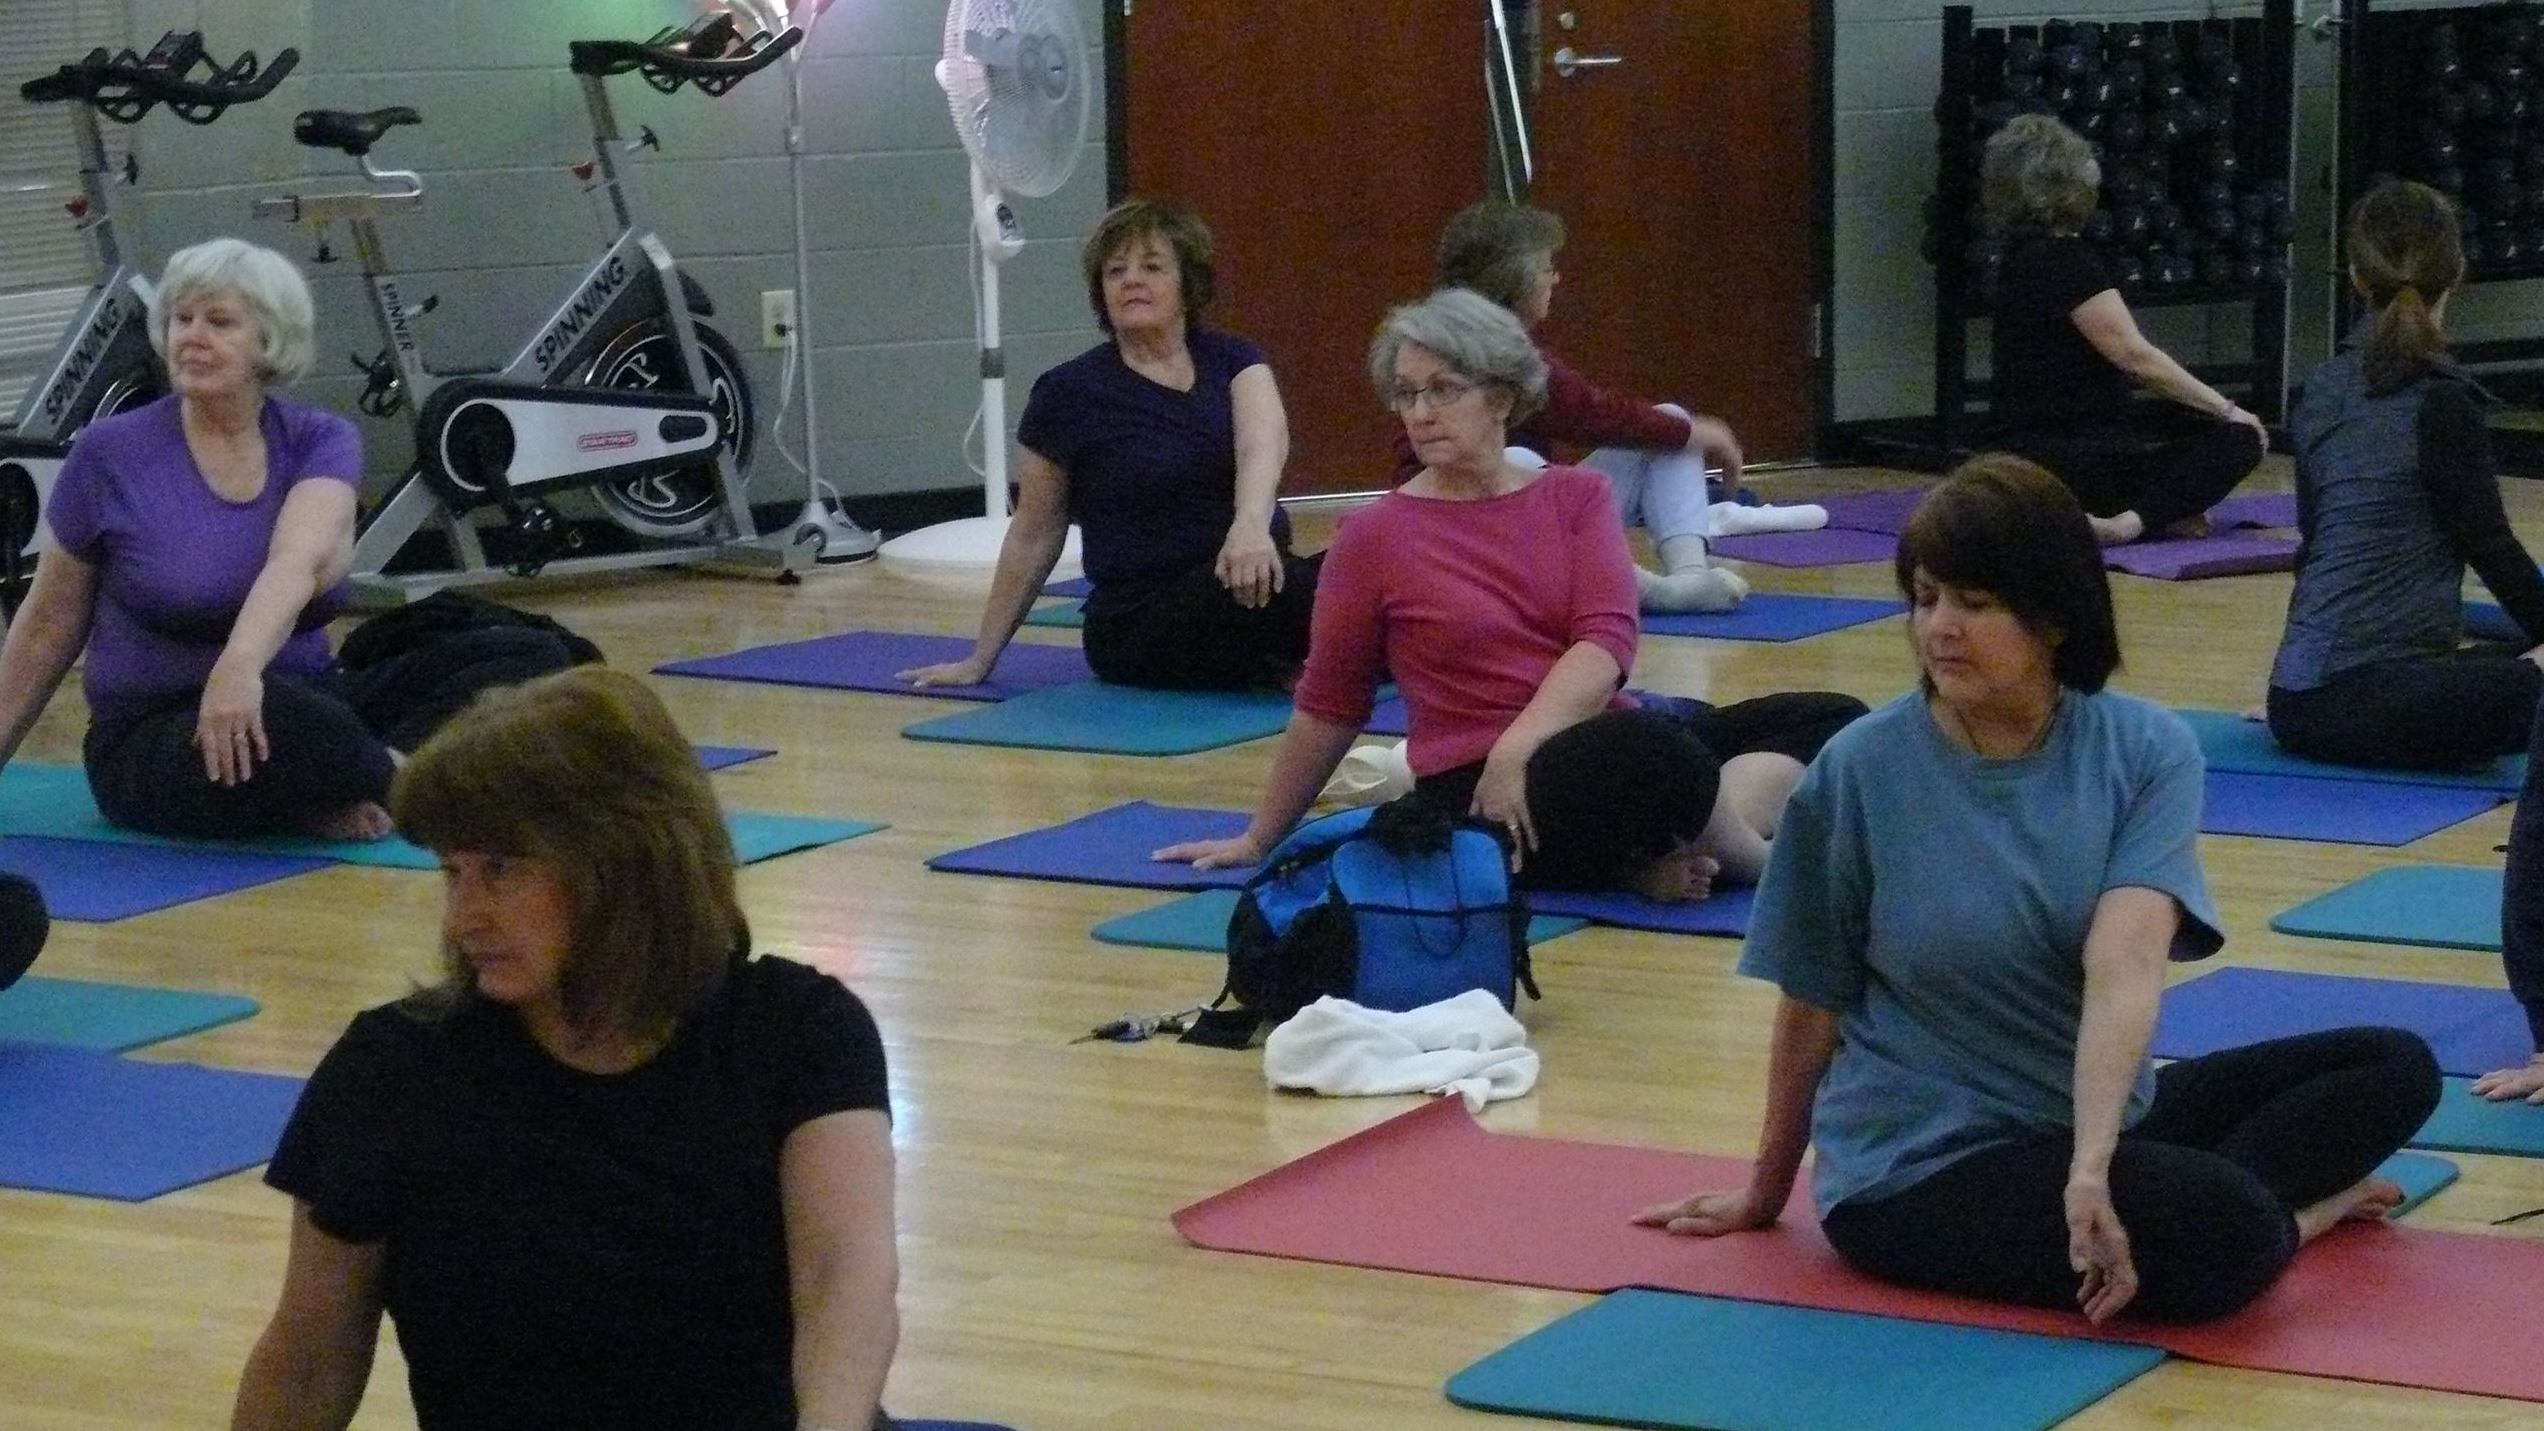 Group Exercise Class - Yoga